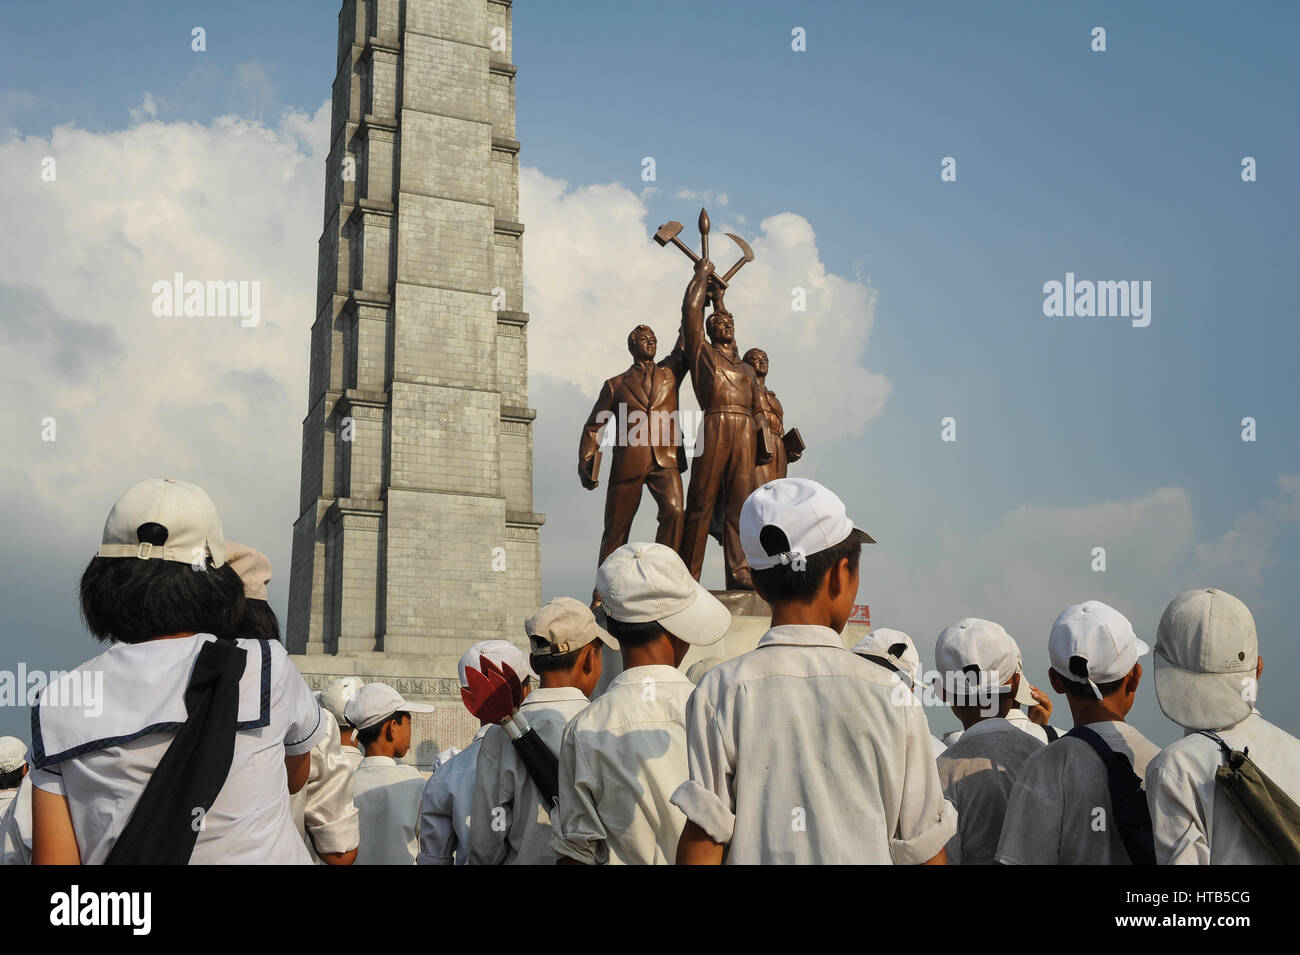 08.08.2012, Pyongyang, North Korea - Pupils and students rehearse for an upcoming mass convention at the tower of - Stock Image